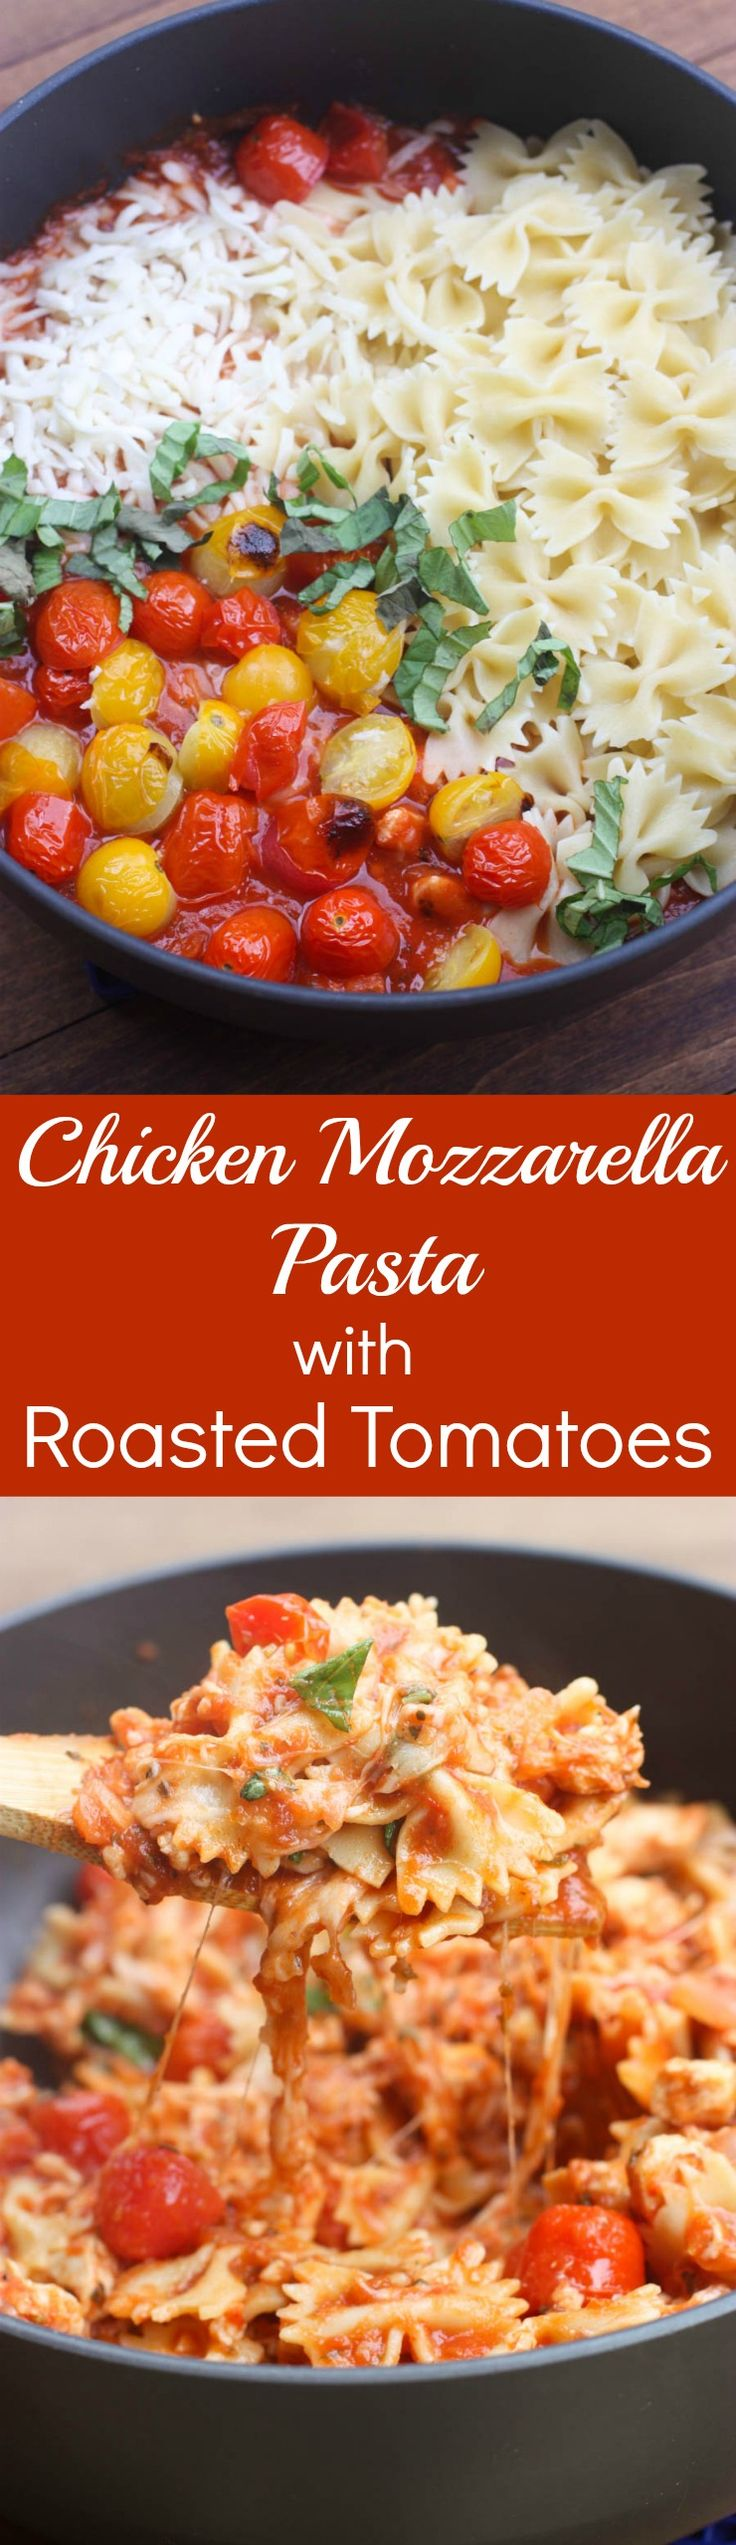 Warm and cheesy Chicken Mozzarella Pasta with Roasted Tomatoes is an easy, family-friendly pasta that takes less than 30 minutes to make! | Tastes Better From Scratch